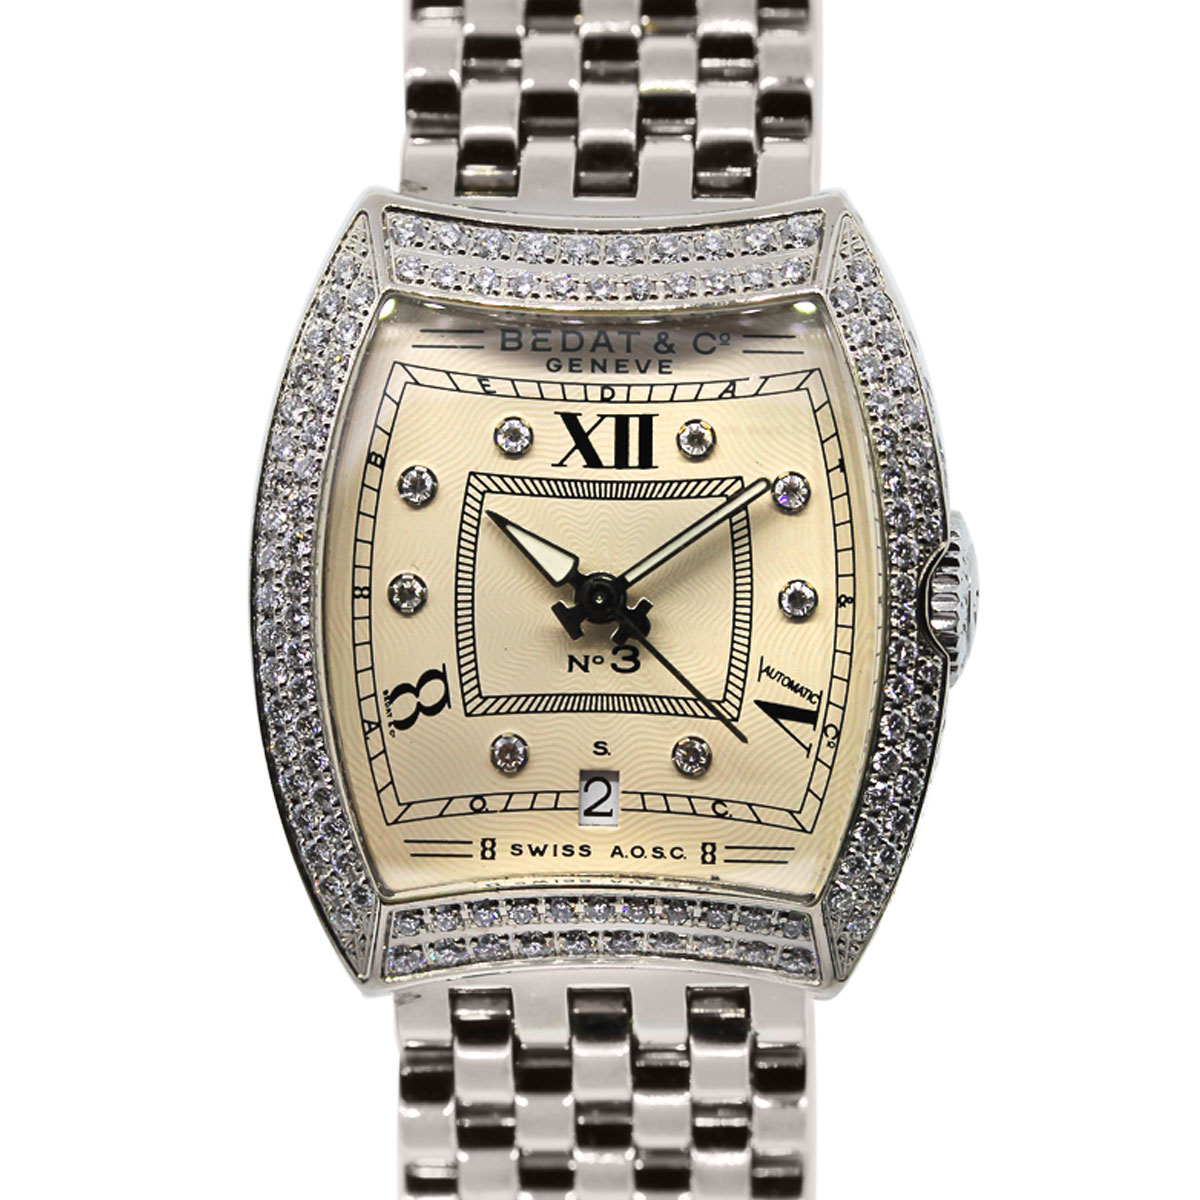 You are viewing this Bedat & Co. White Gold Diamond Bezel Ladies Watch!